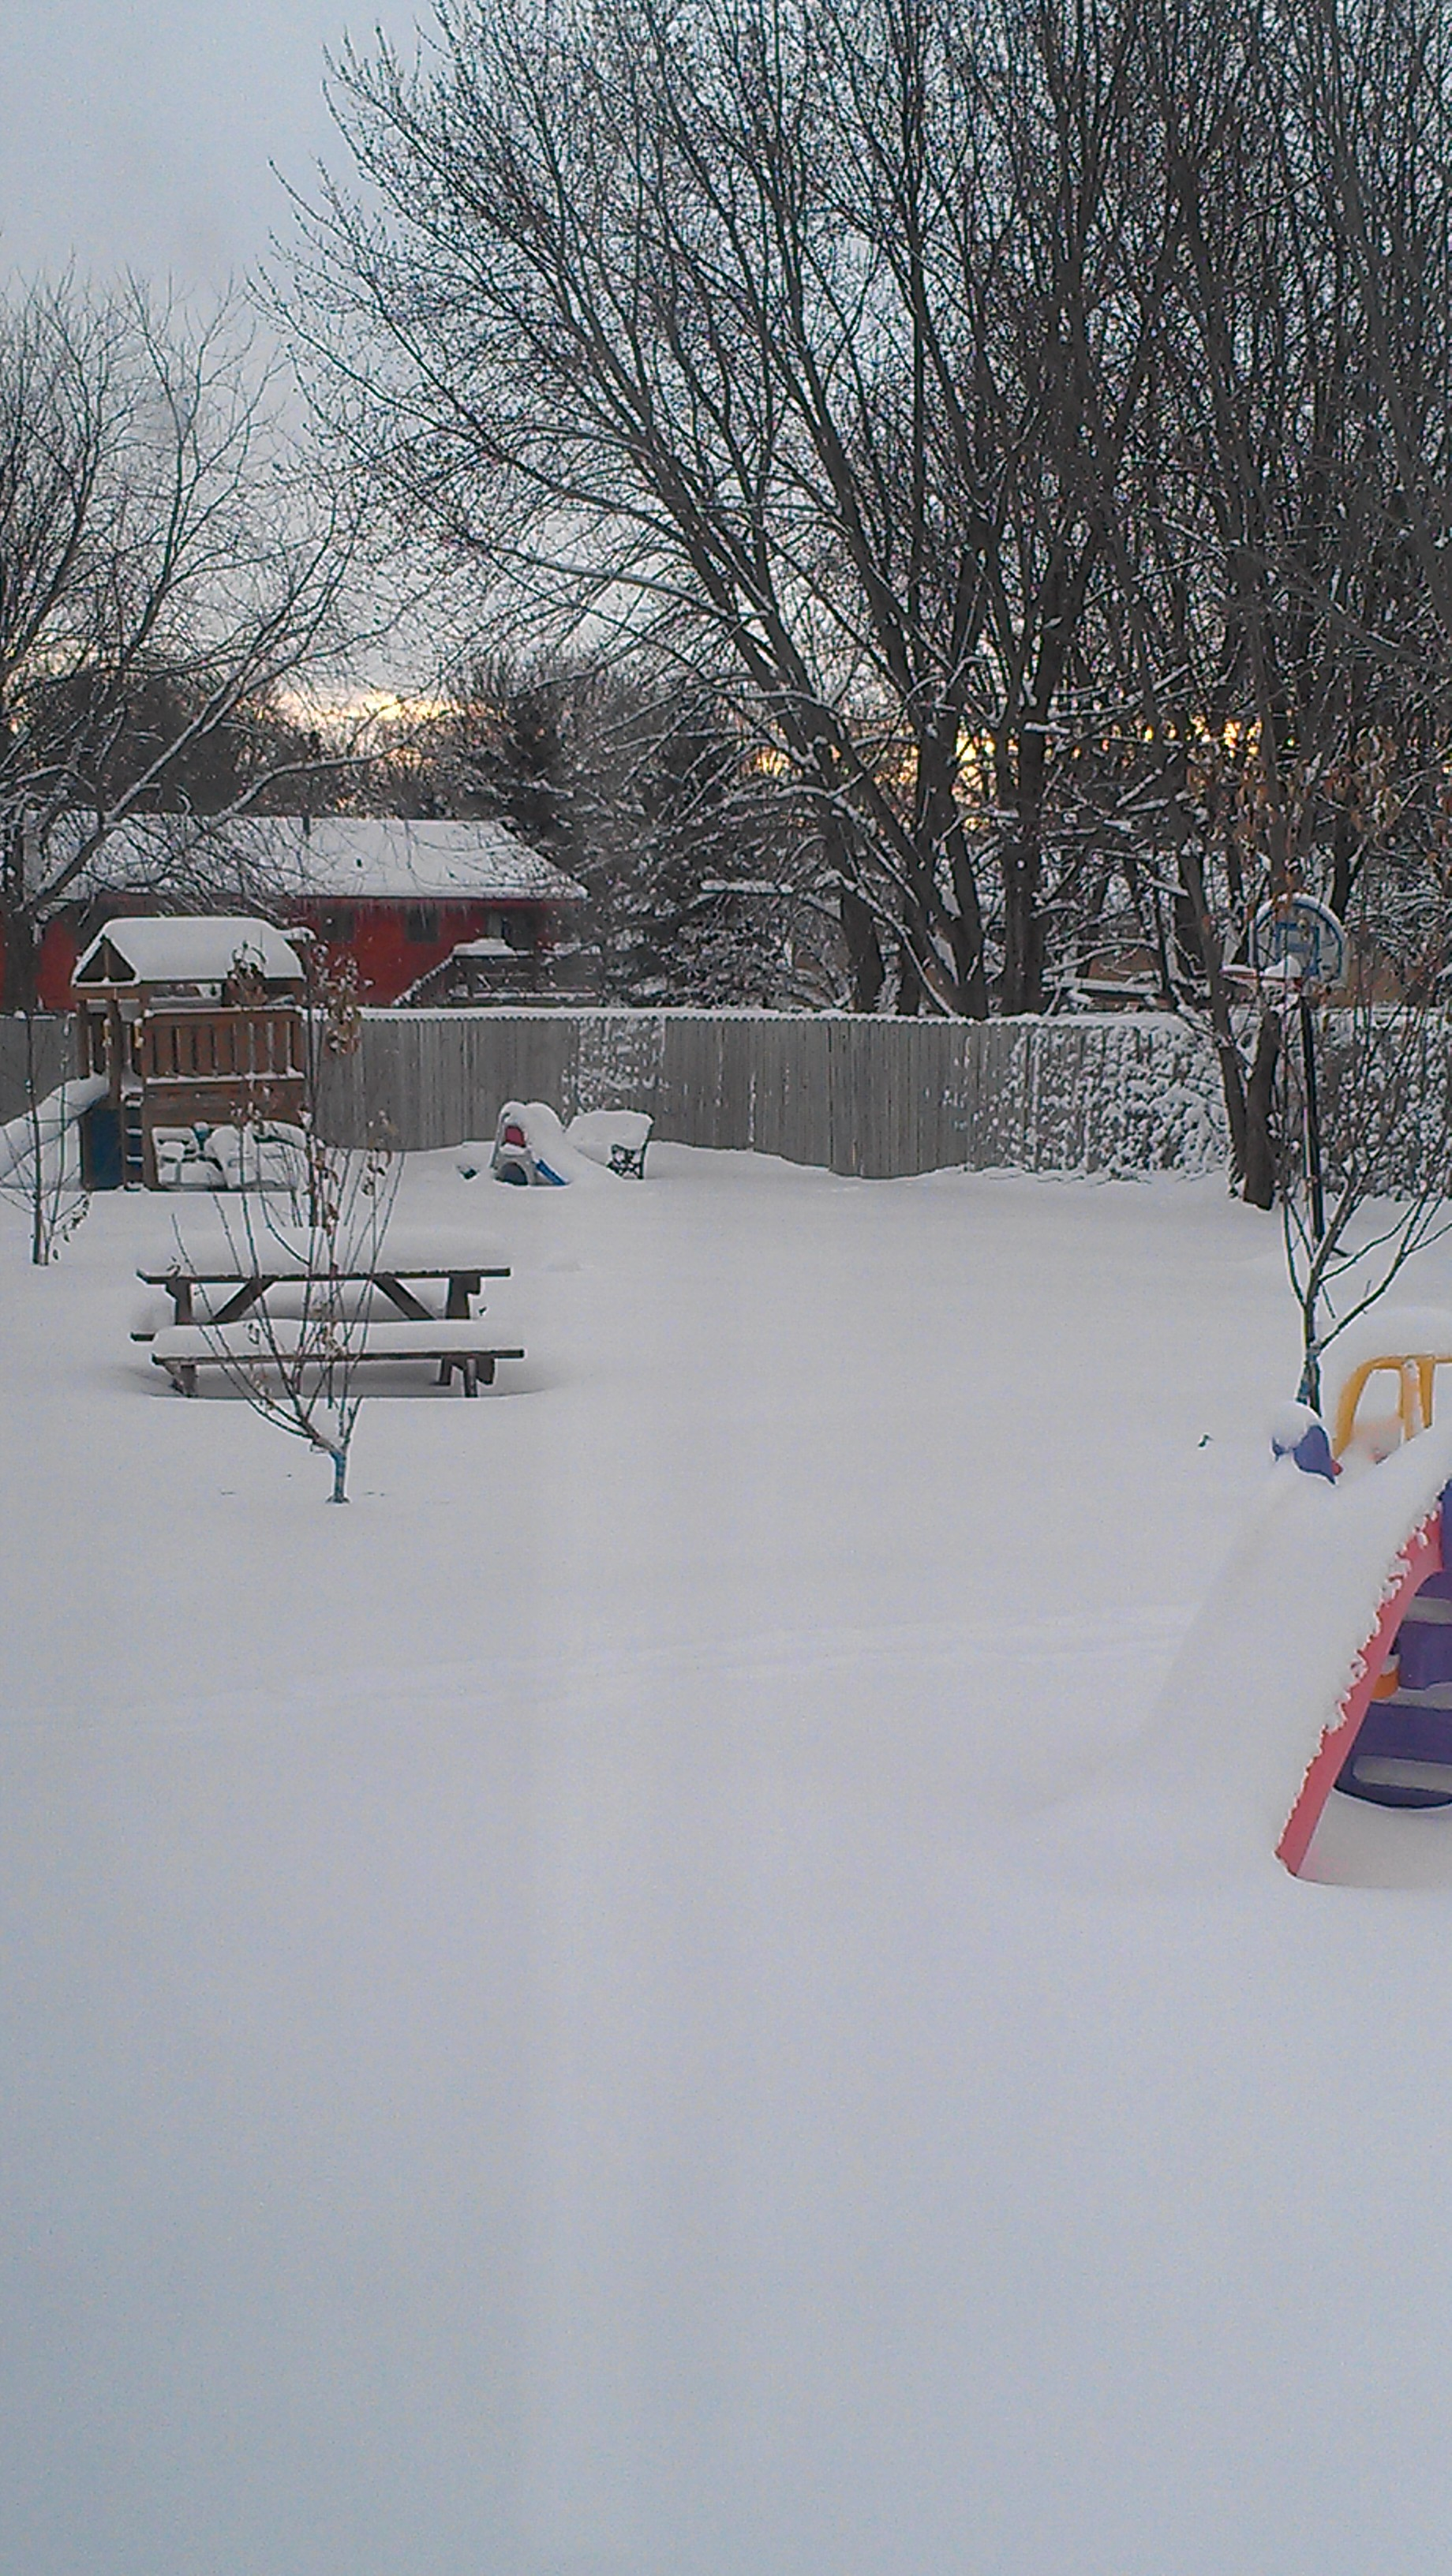 A peek into our back yard, looking towards our neighbors', this morning.